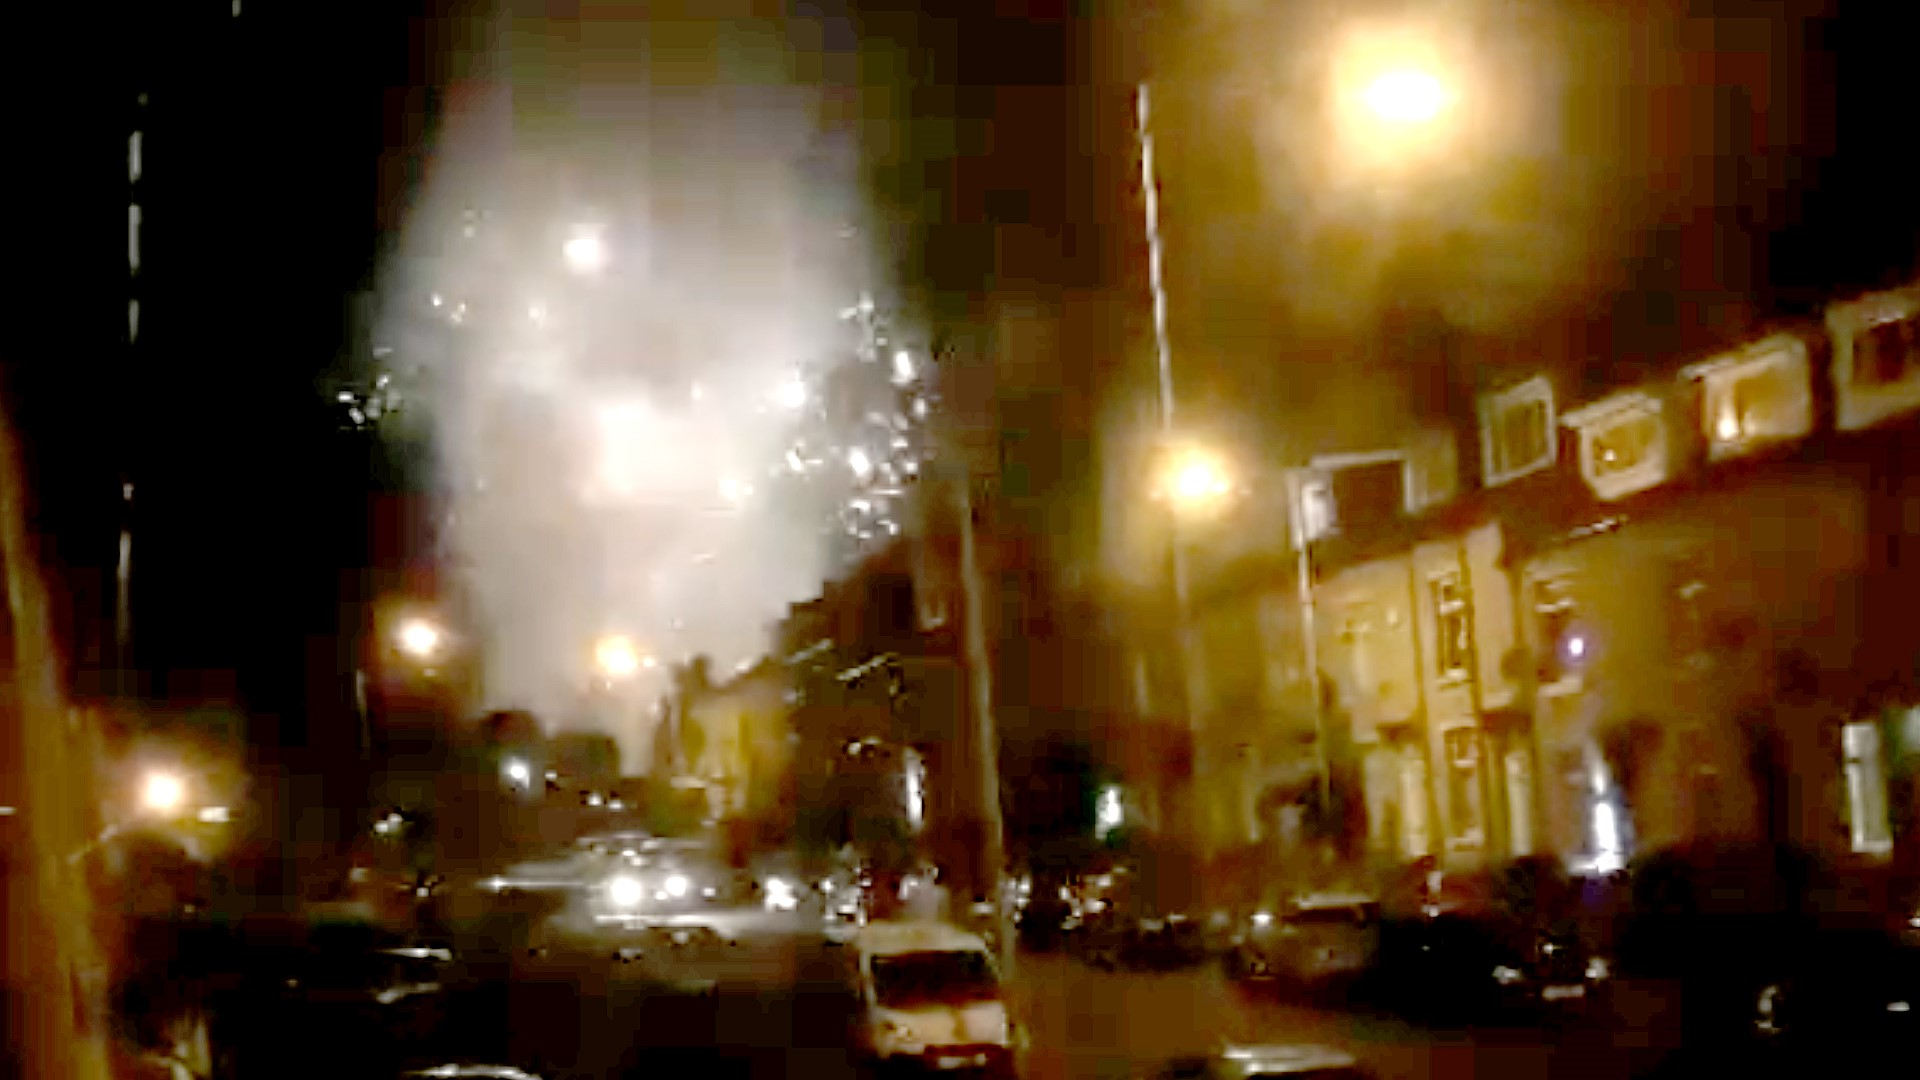 Bradford residents left furious over late night fireworks